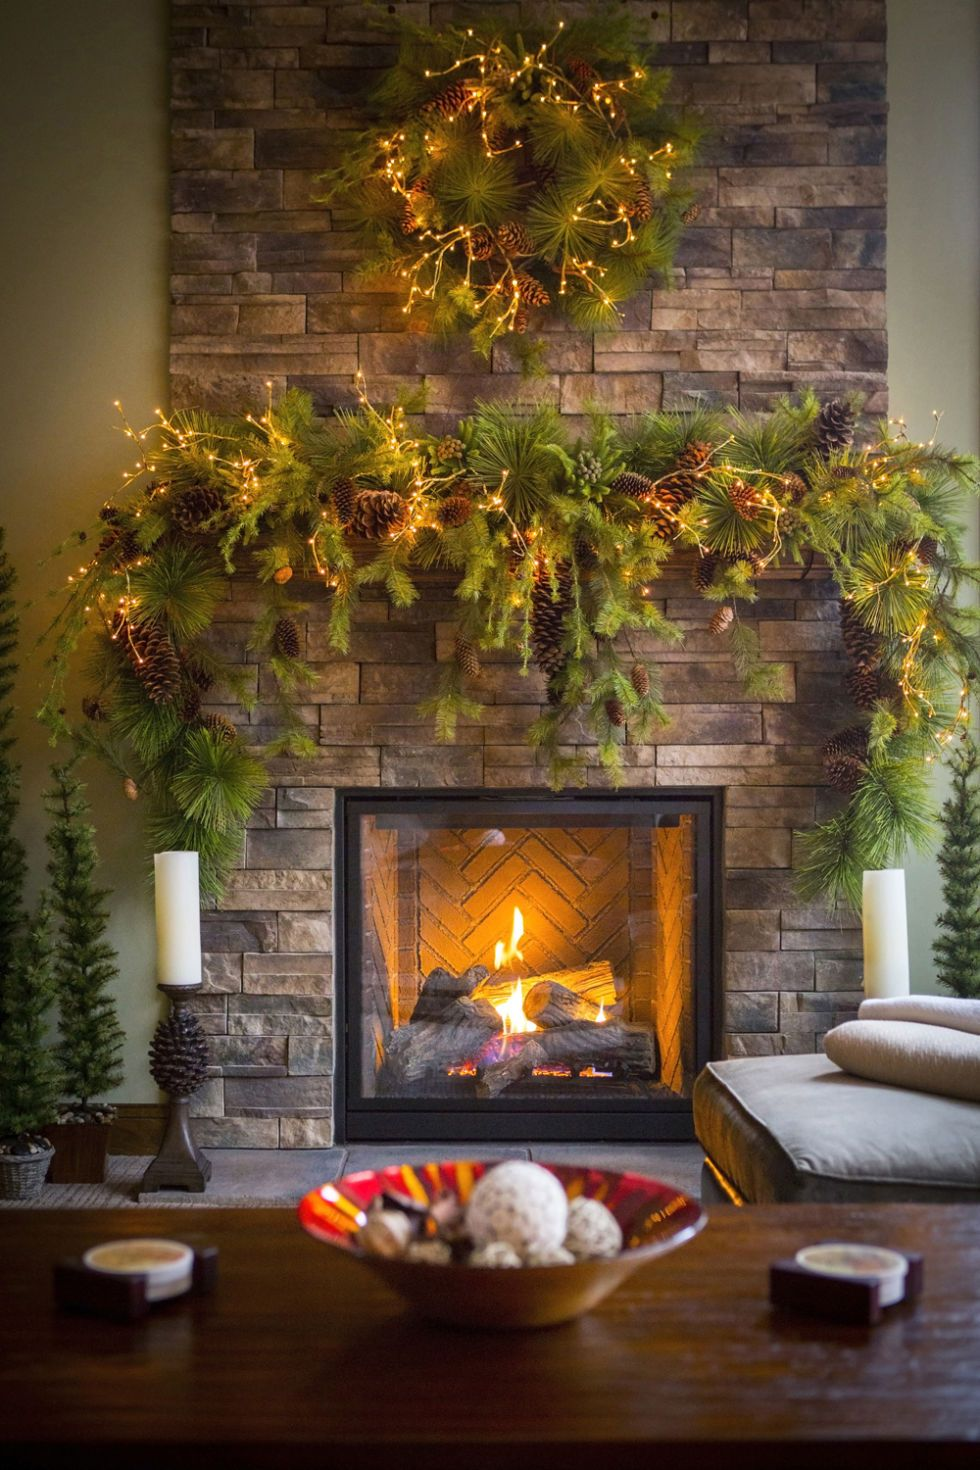 11 cozy photos of fireplaces that will make you want to stay inside rh pinterest co uk